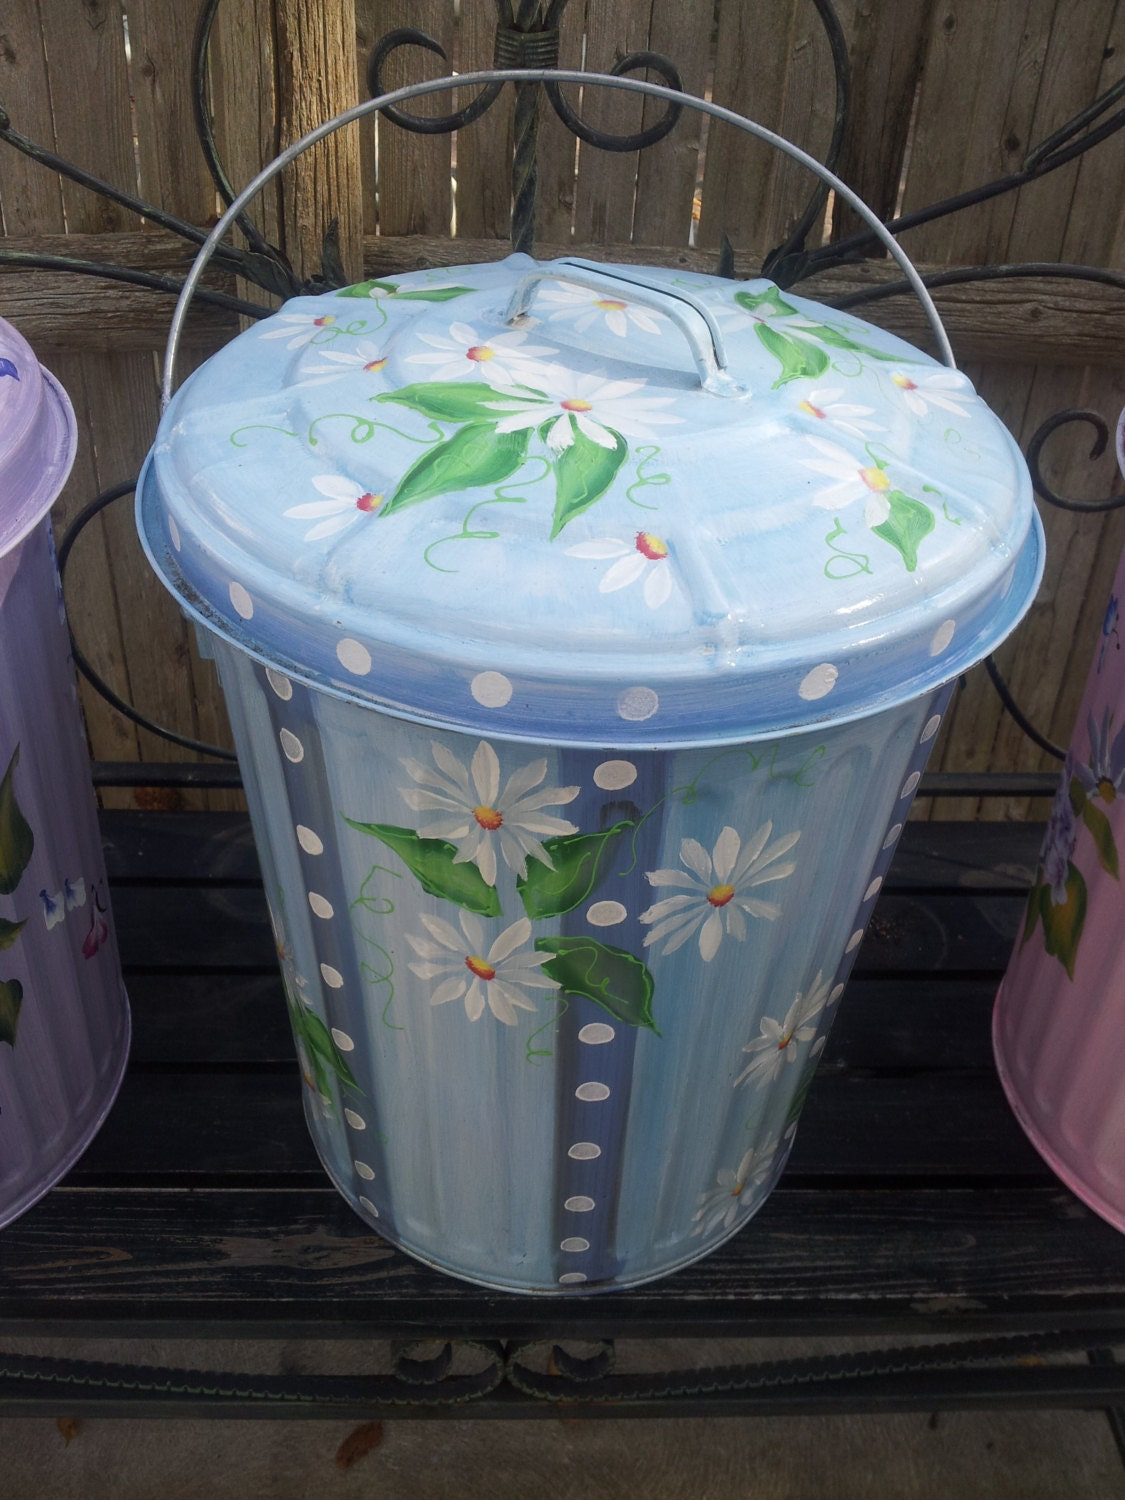 10 Gallon Hand Painted Galvanized Trash Can